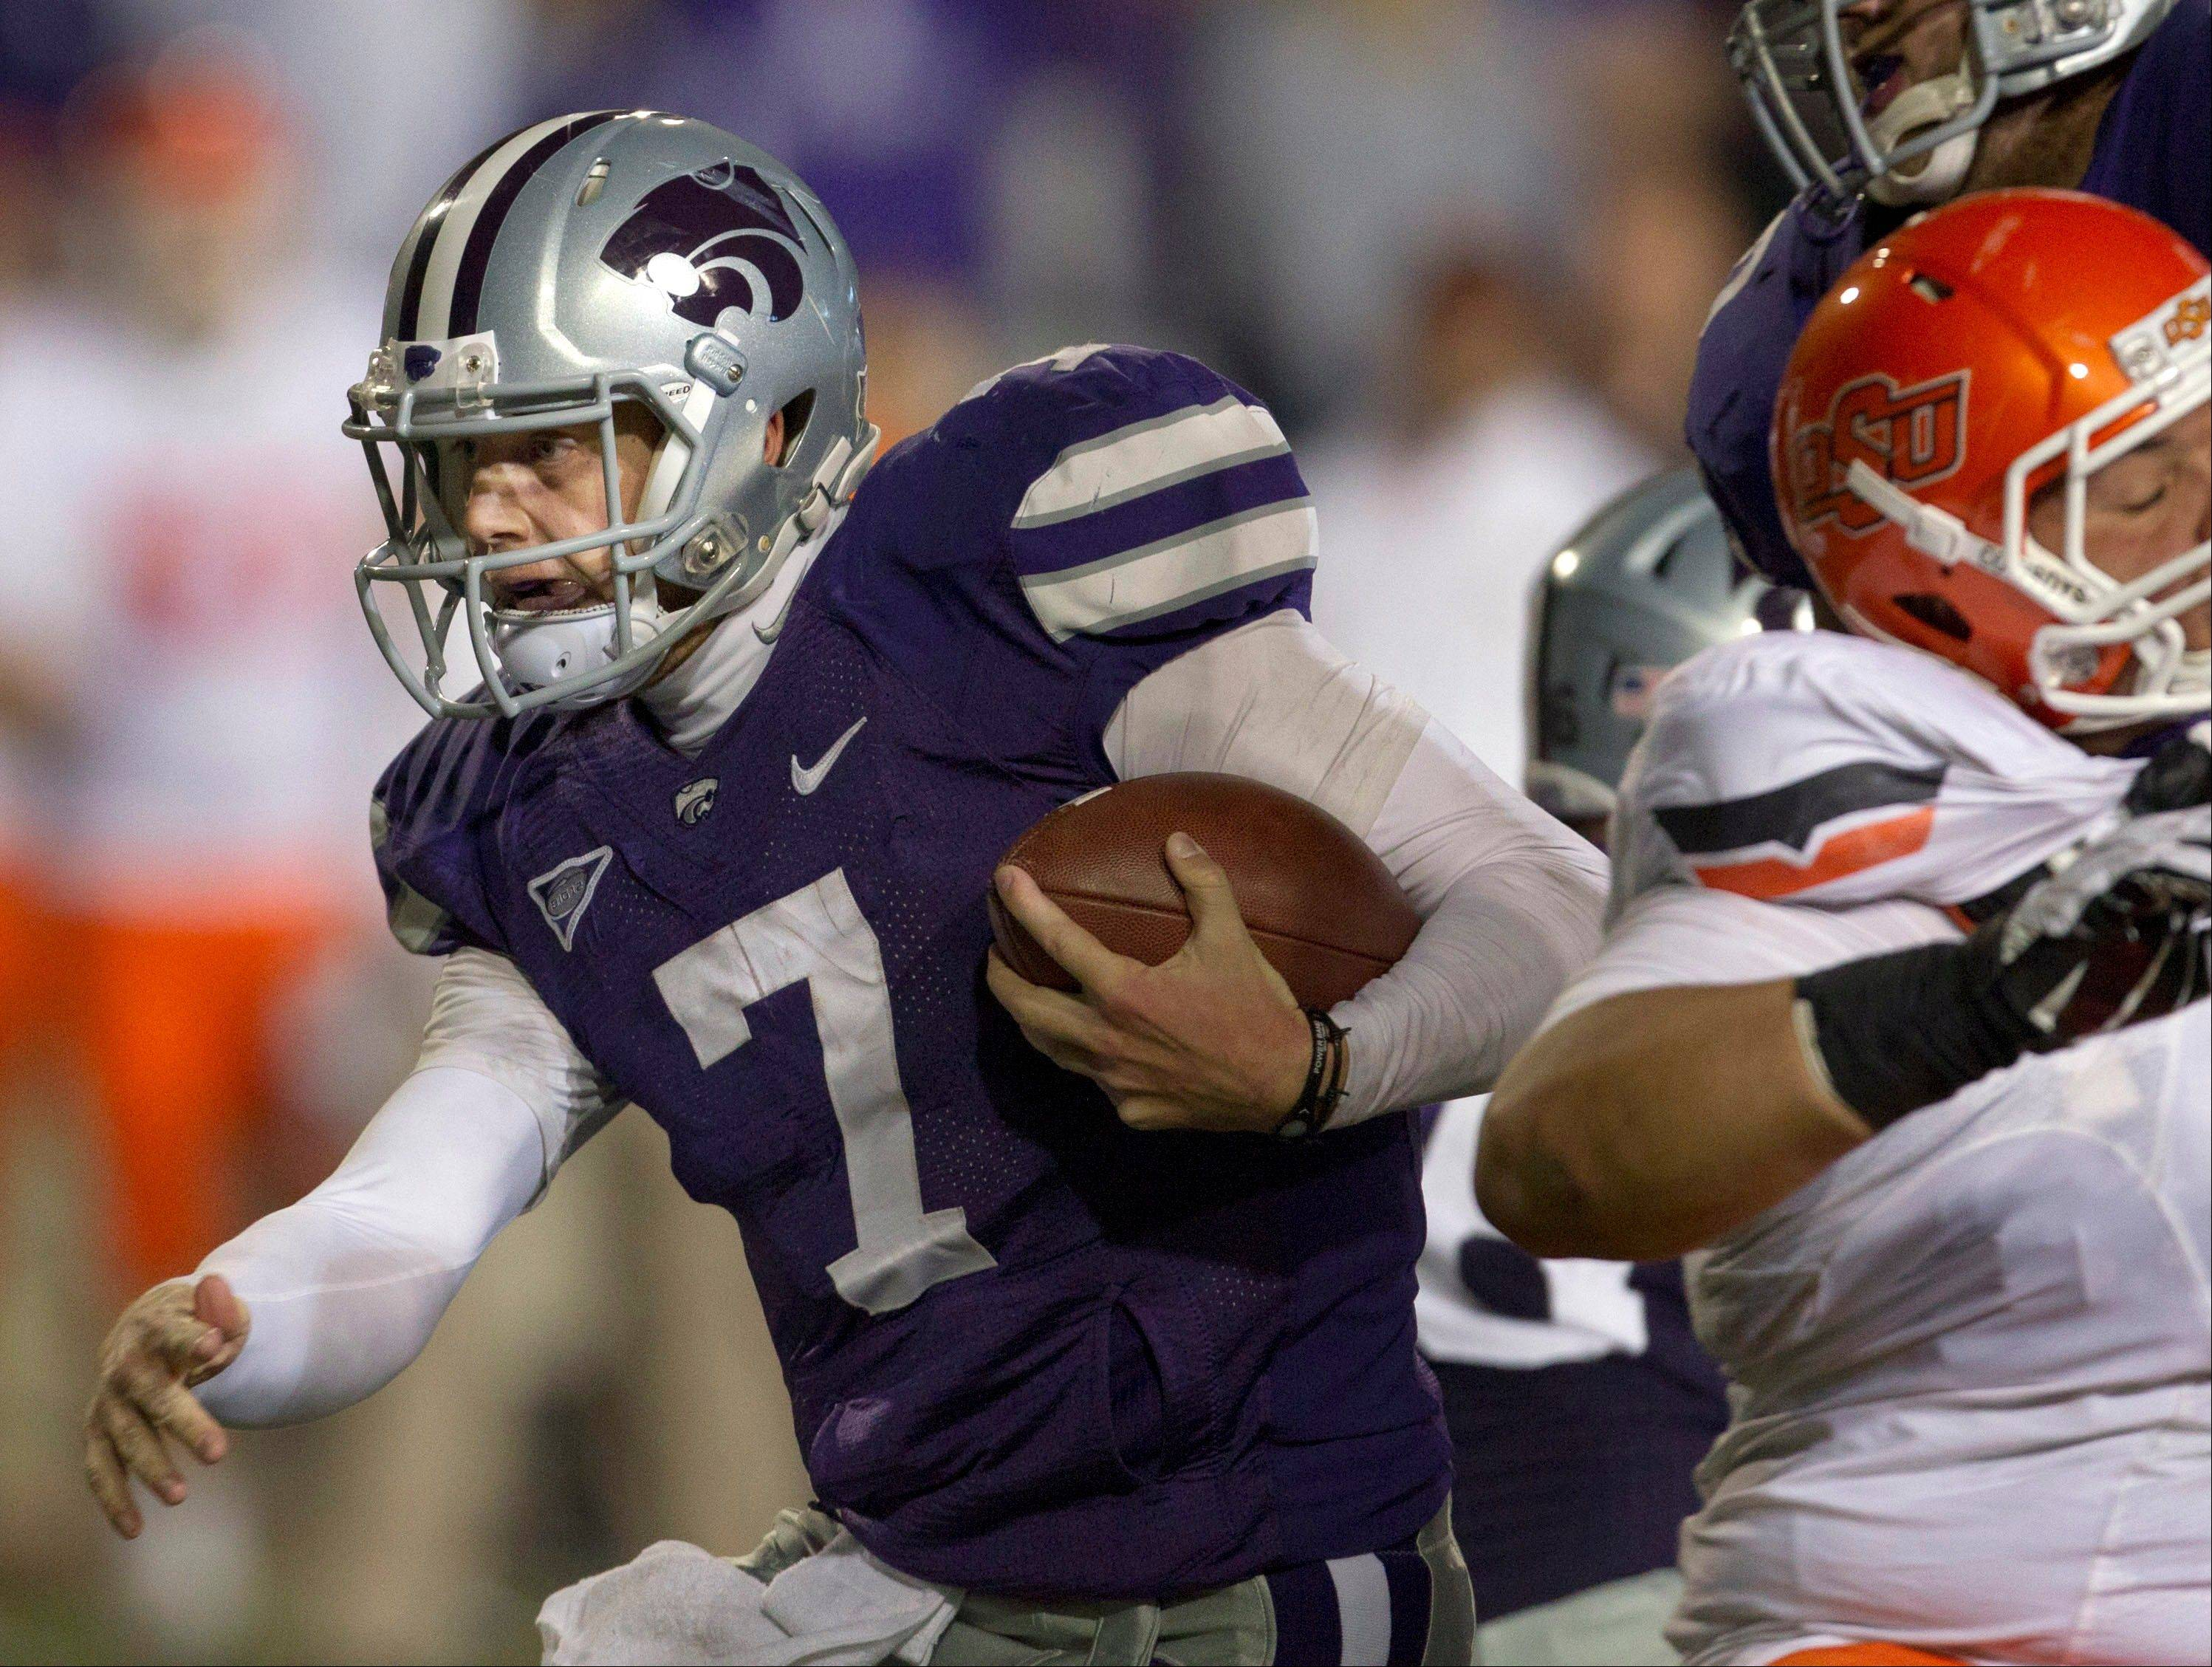 Kansas State quarterback Collin Klein runs for a first down Saturday during the first half against Oklahoma State in Manhattan, Kan.